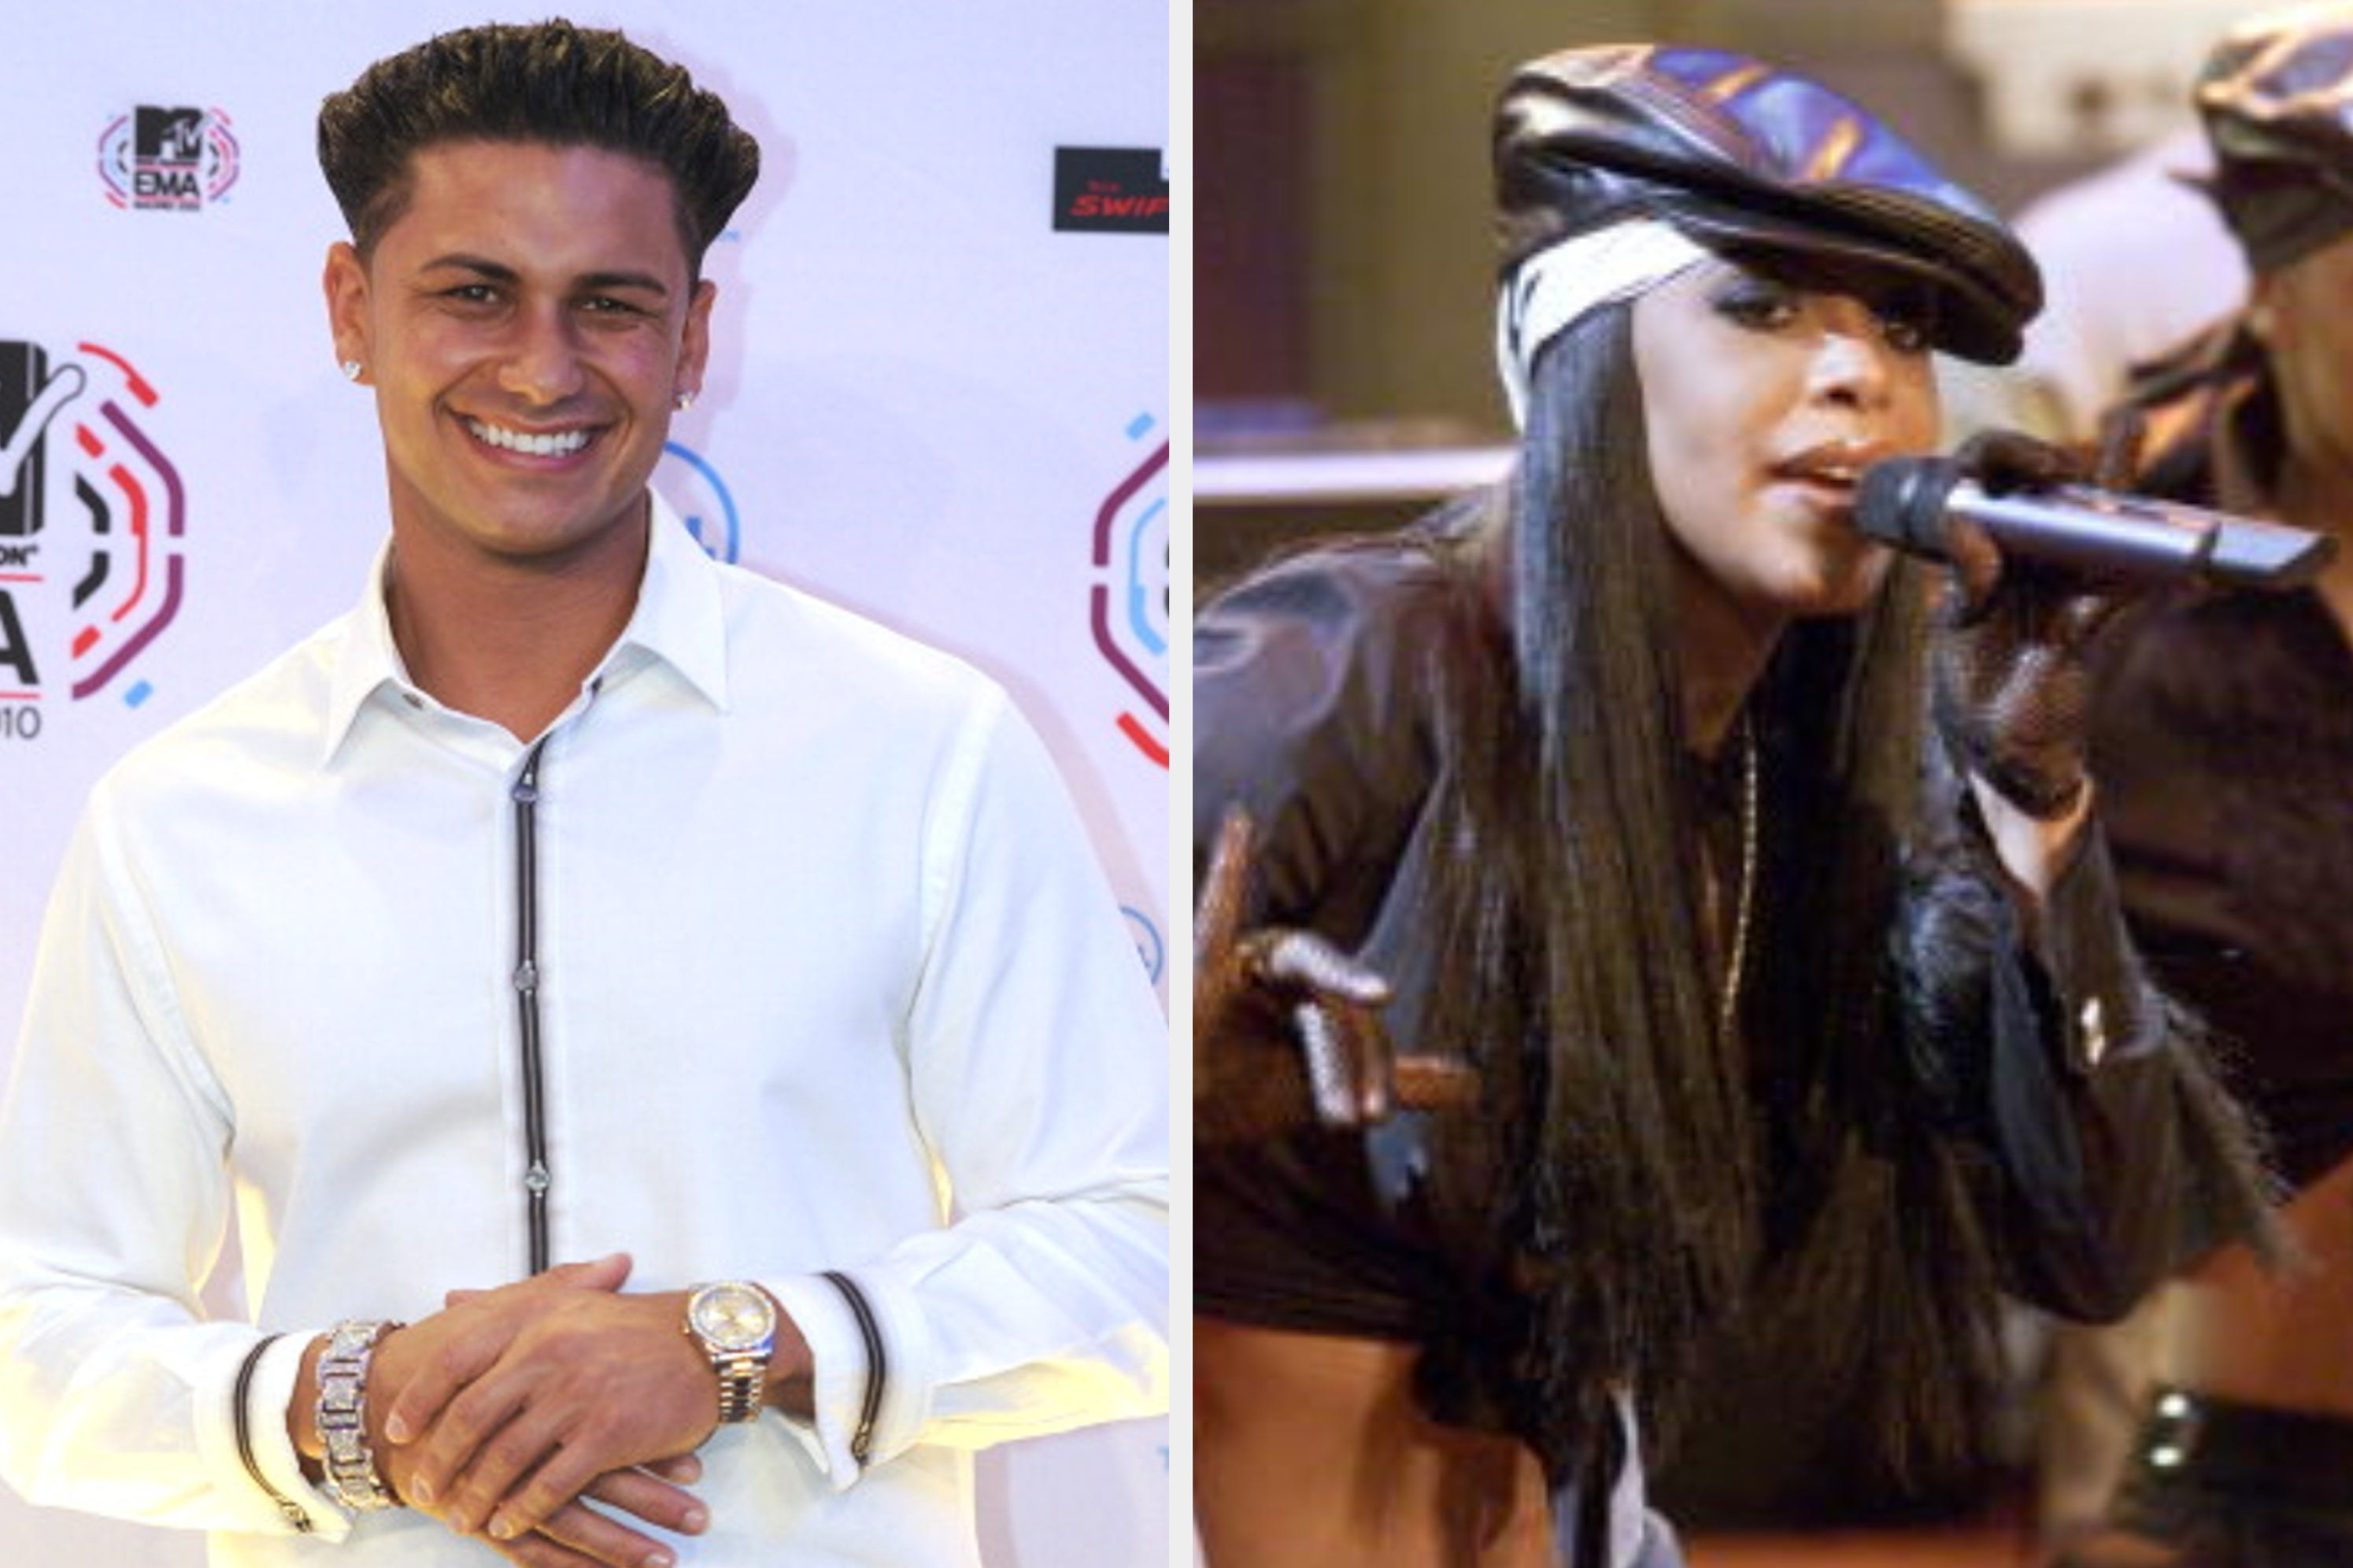 Pauly D from Jersey Shore and Aaliyah